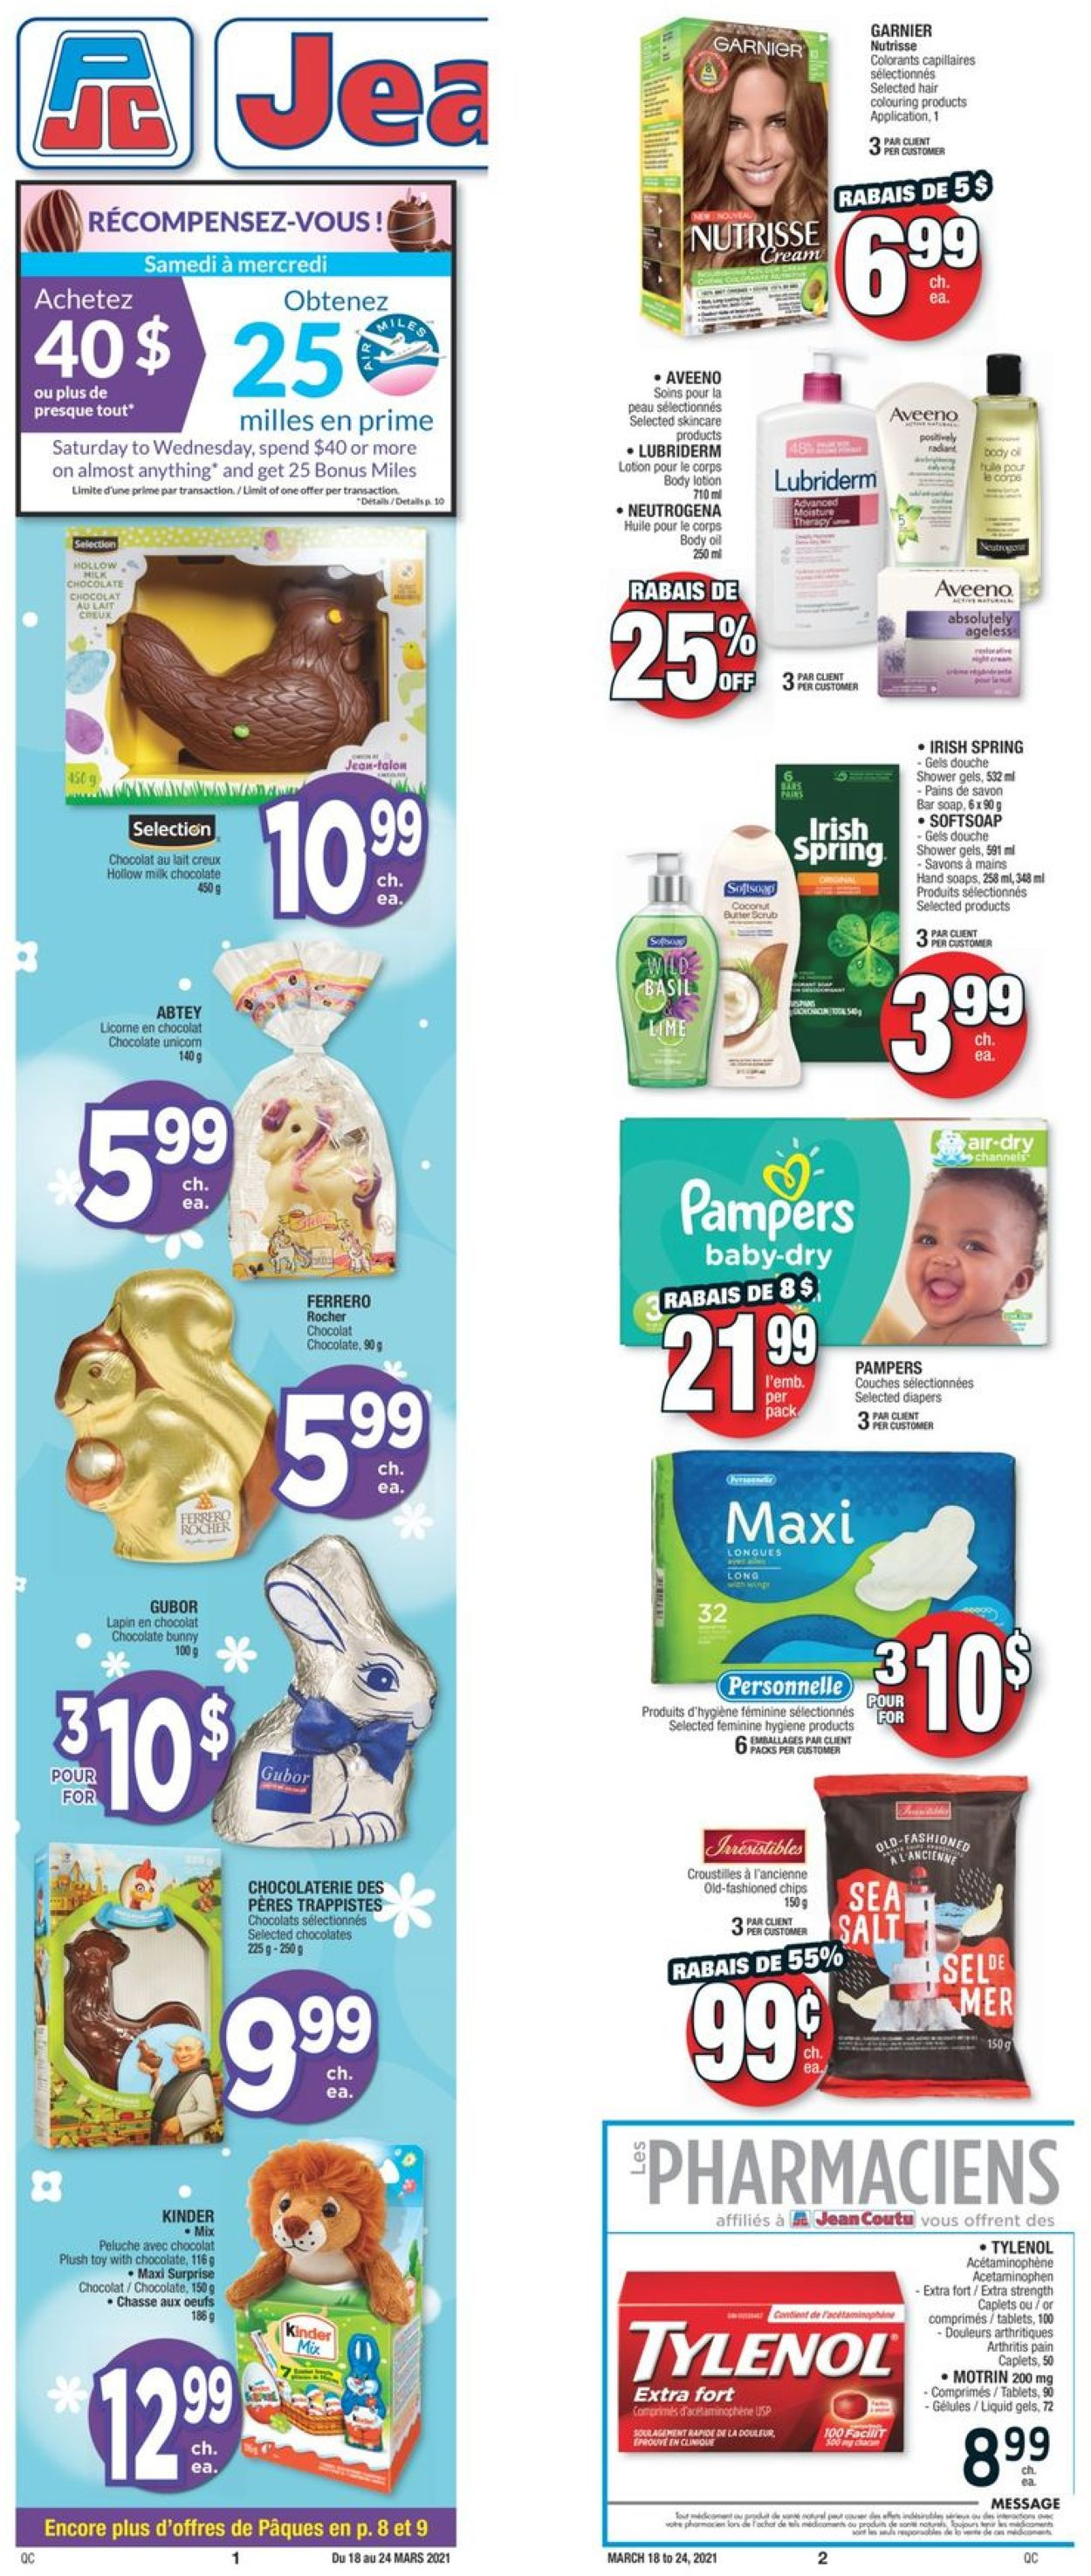 Jean Coutu Flyer - 03/18-03/24/2021